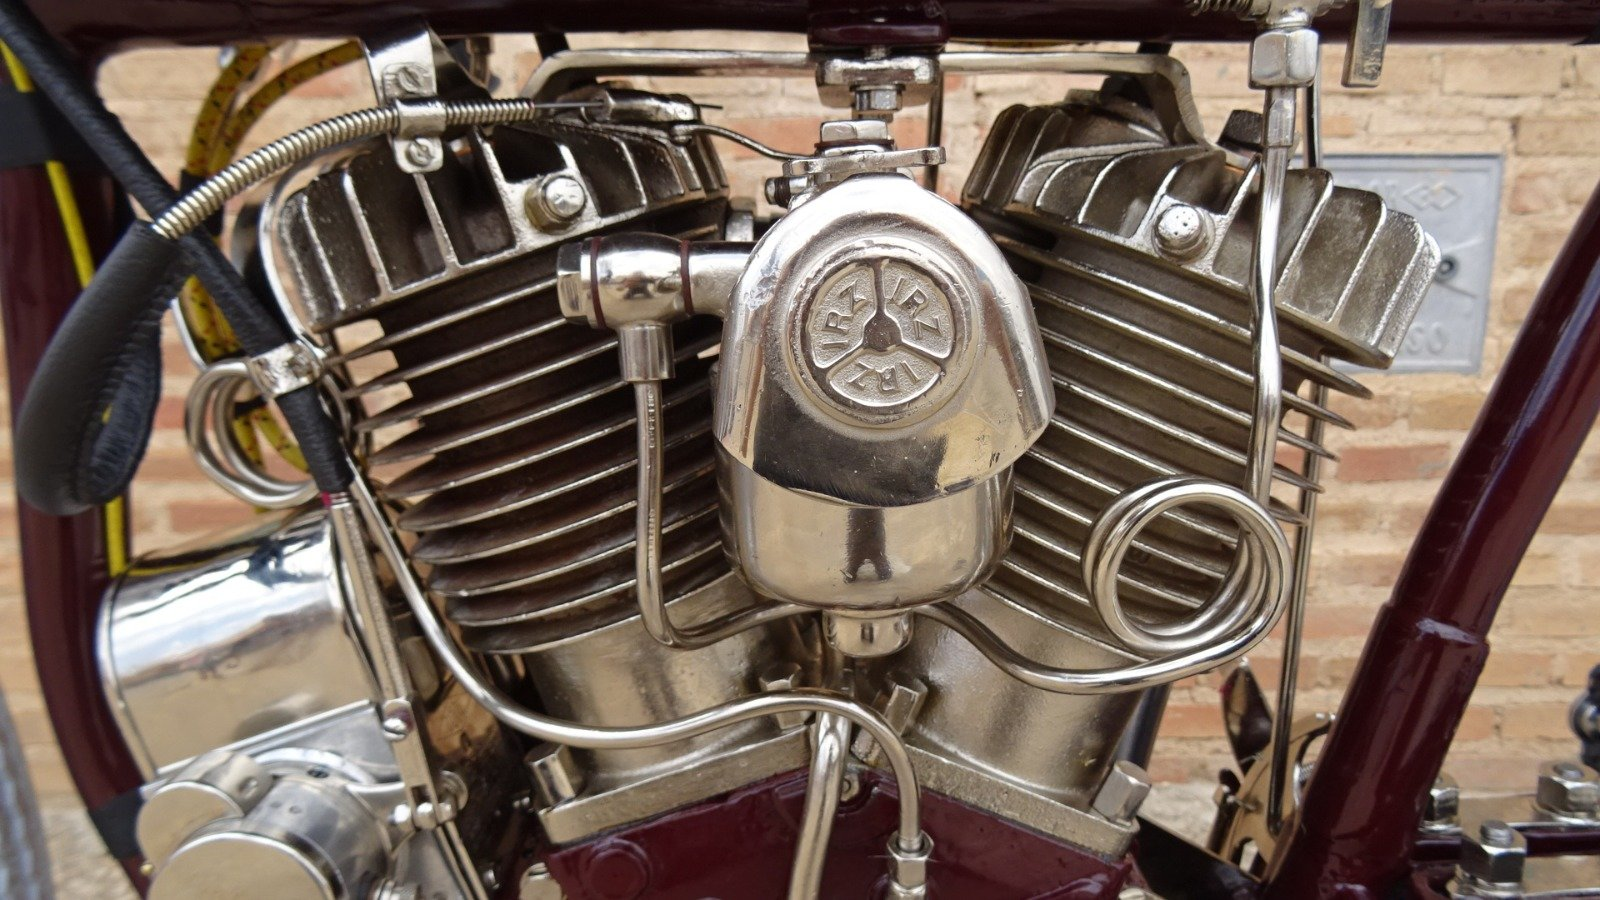 1920 INDIAN POWERPLUS TT RACER 1000cc For Sale (picture 4 of 6)